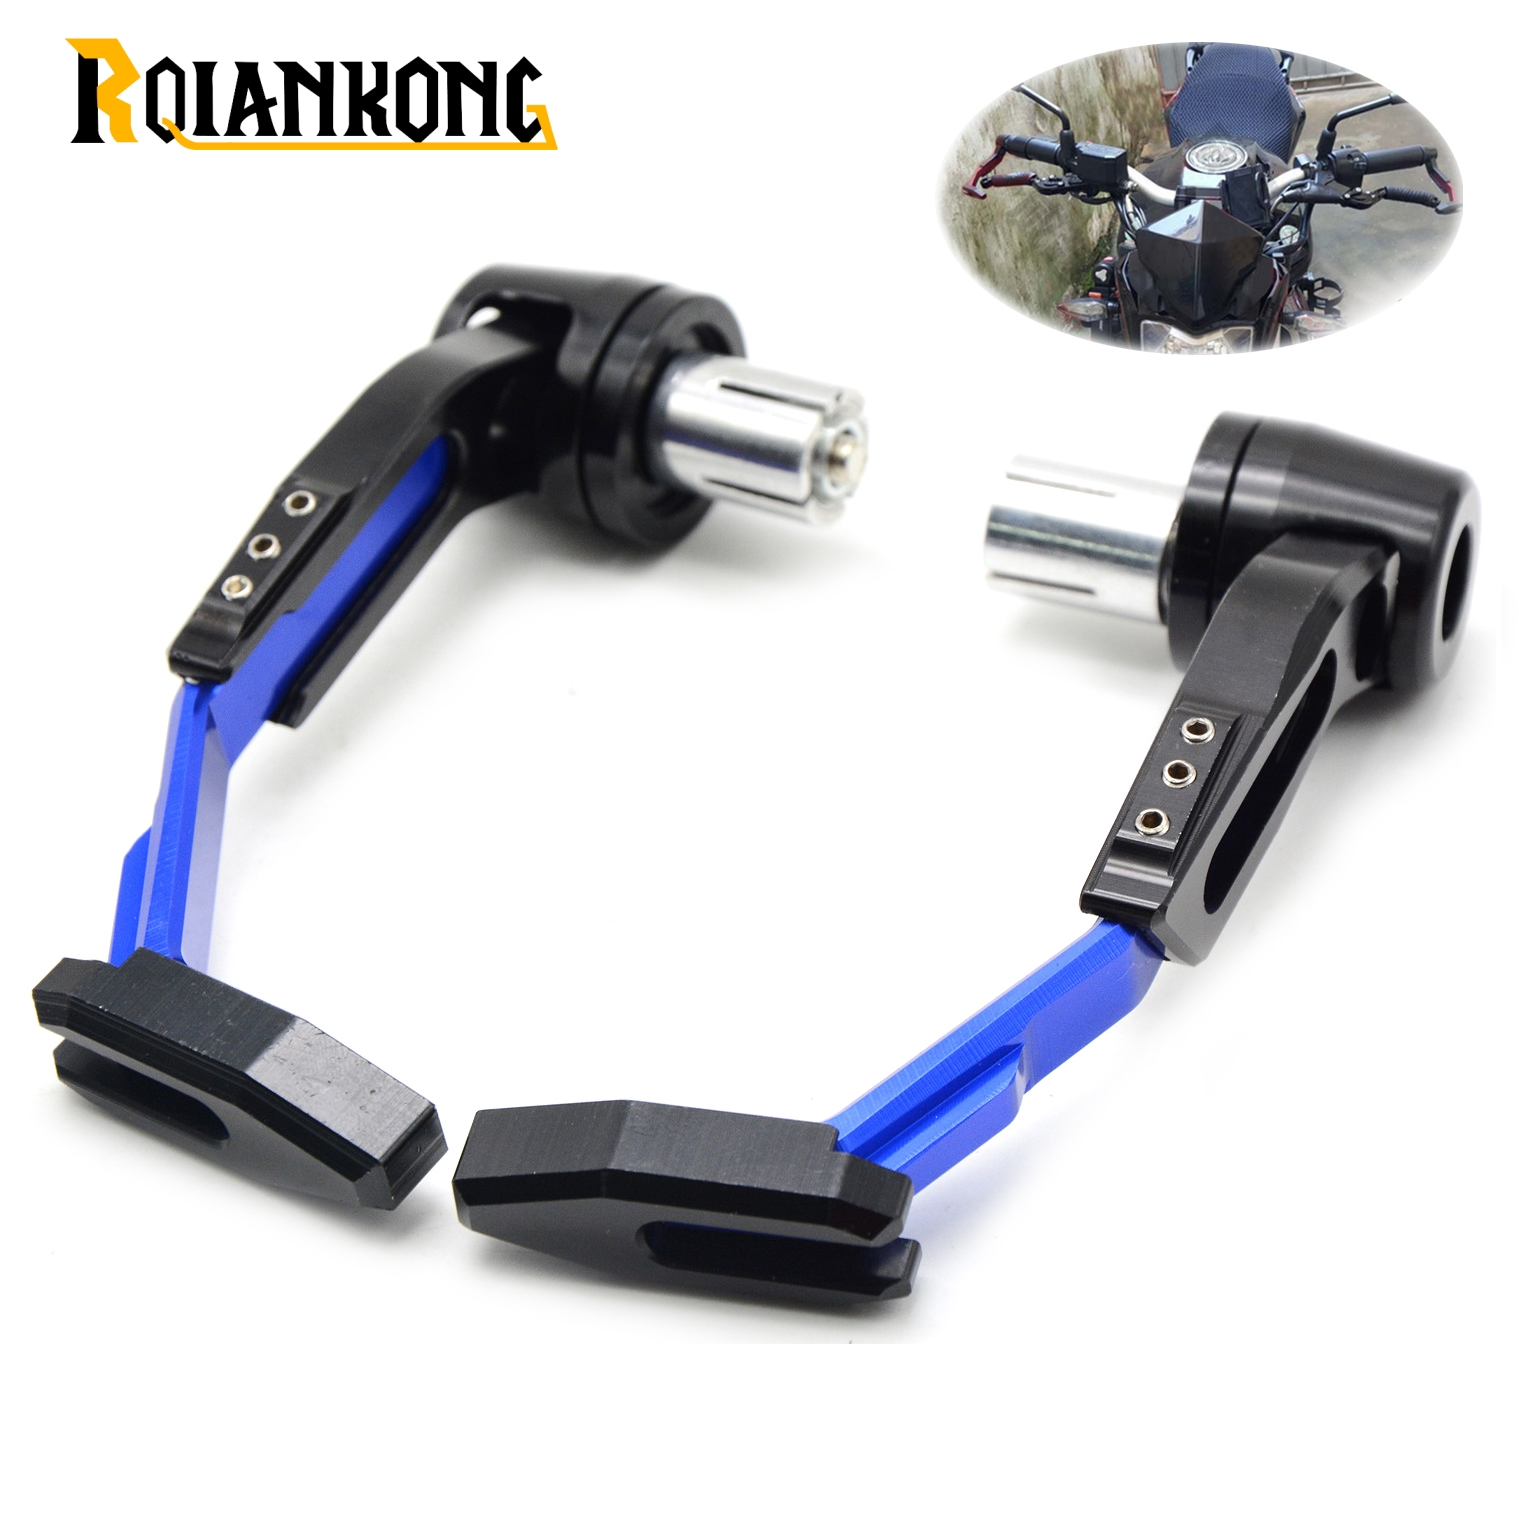 Universal 7/822mm Motorcycle Handlebar Clutch Brake Lever Protect Guard for Yamaha XV 950 R ABS/Racer YBR 125 tmax500 tmax530 for 22mm 7 8 handlebar motorcycle dirt bike universal stunt clutch lever assembly cnc aluminum